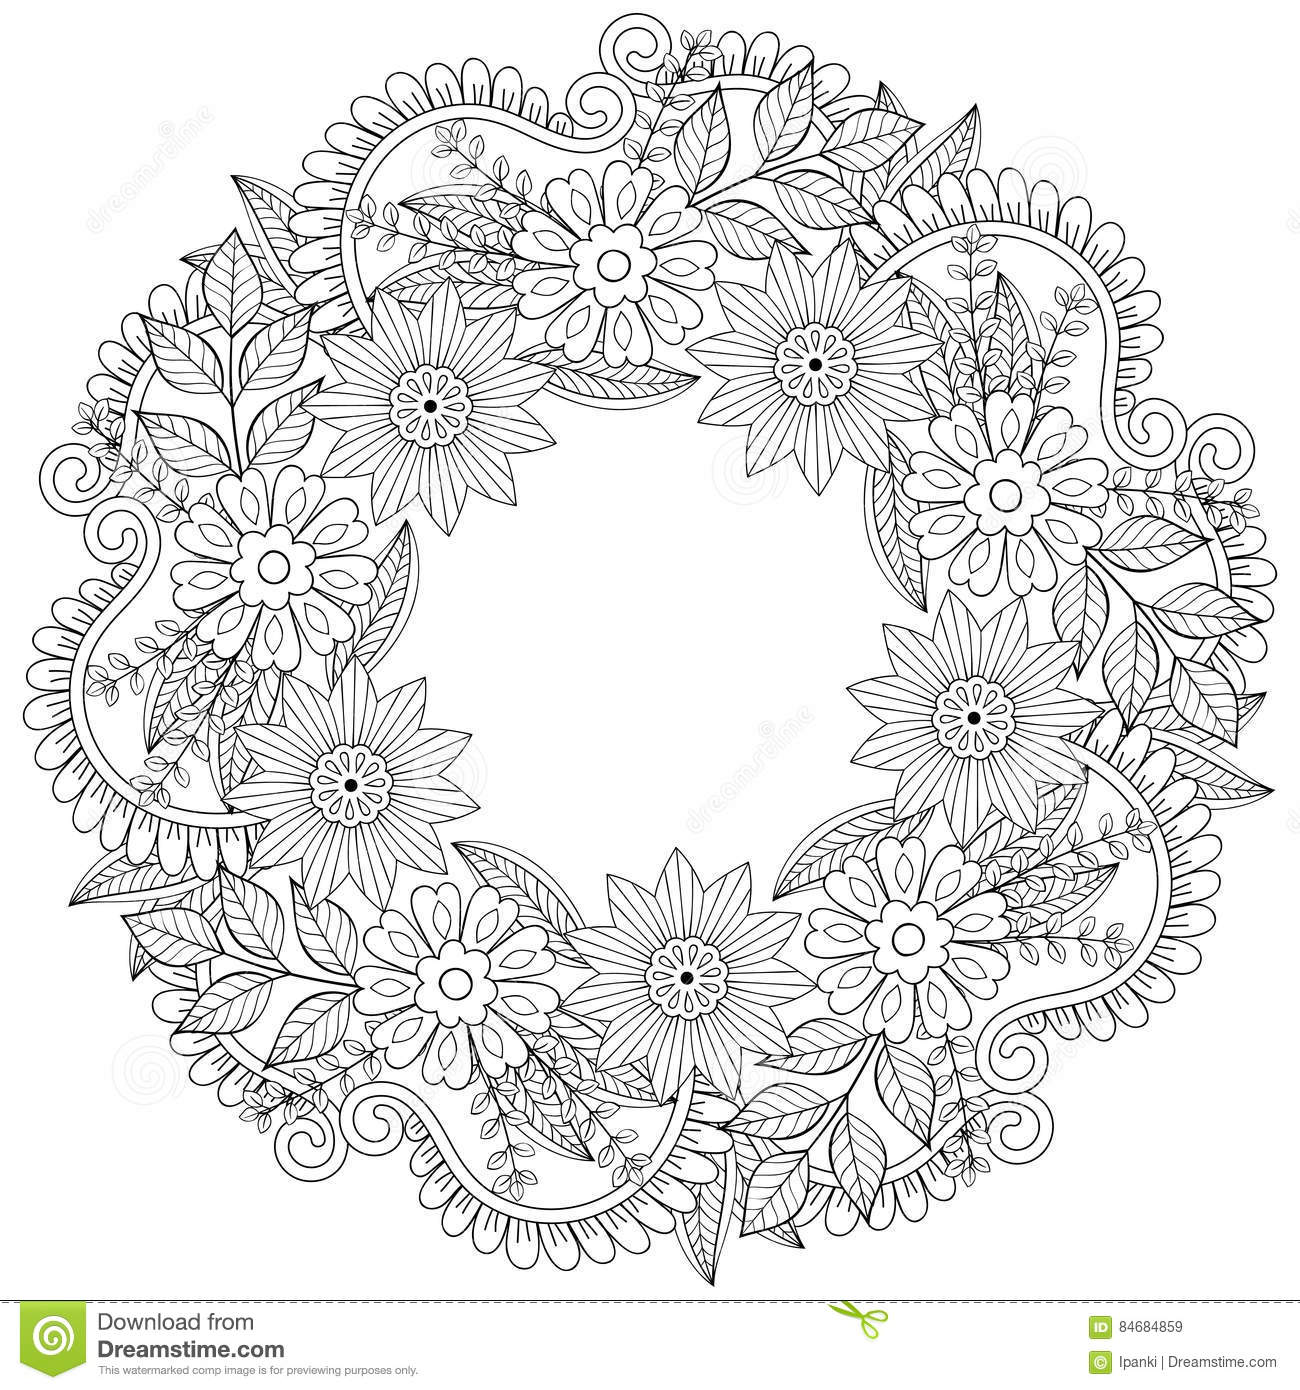 floral adult coloring pages - floral doodles wreath in zentangle style vector circle